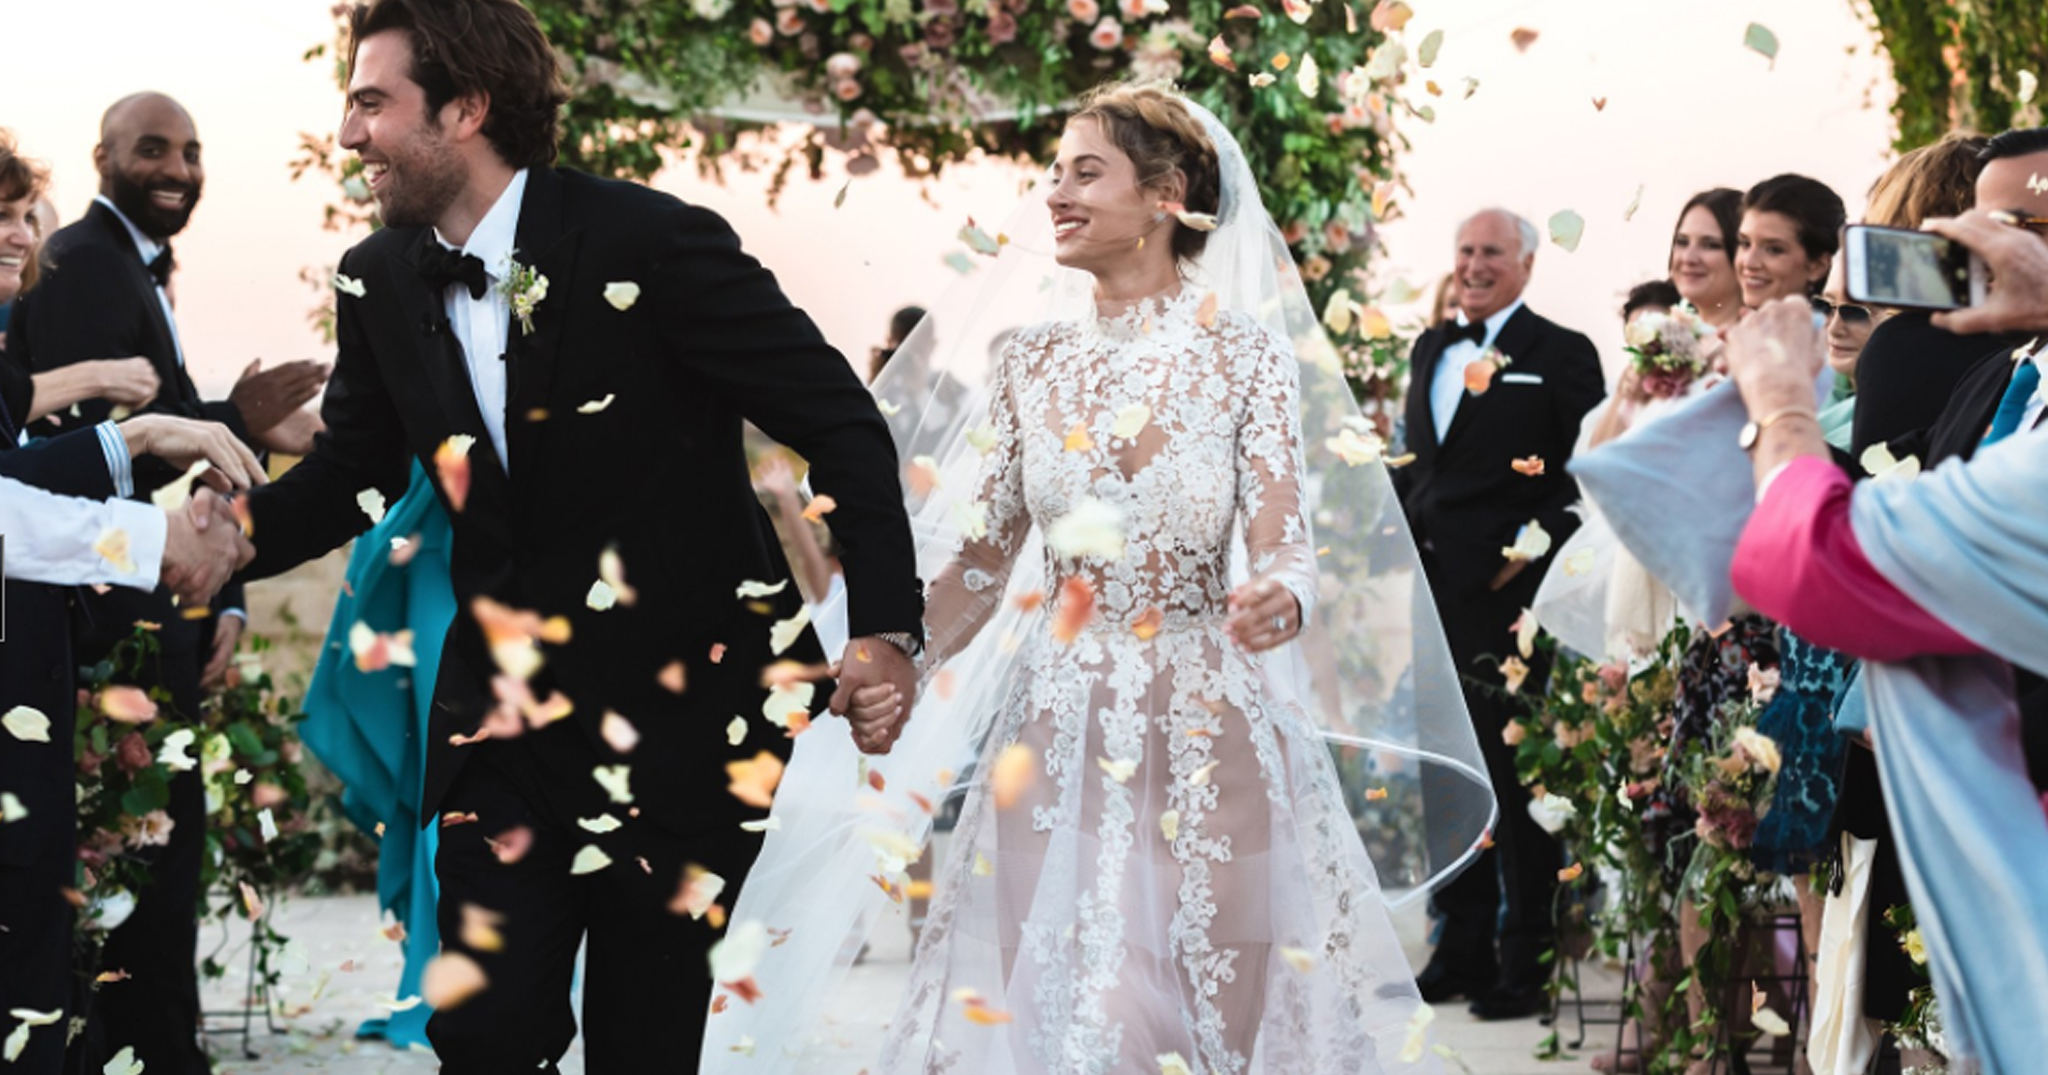 This brides reem acra wedding dress is what dreams are made of this brides reem acra wedding dress is what dreams are made of junglespirit Gallery